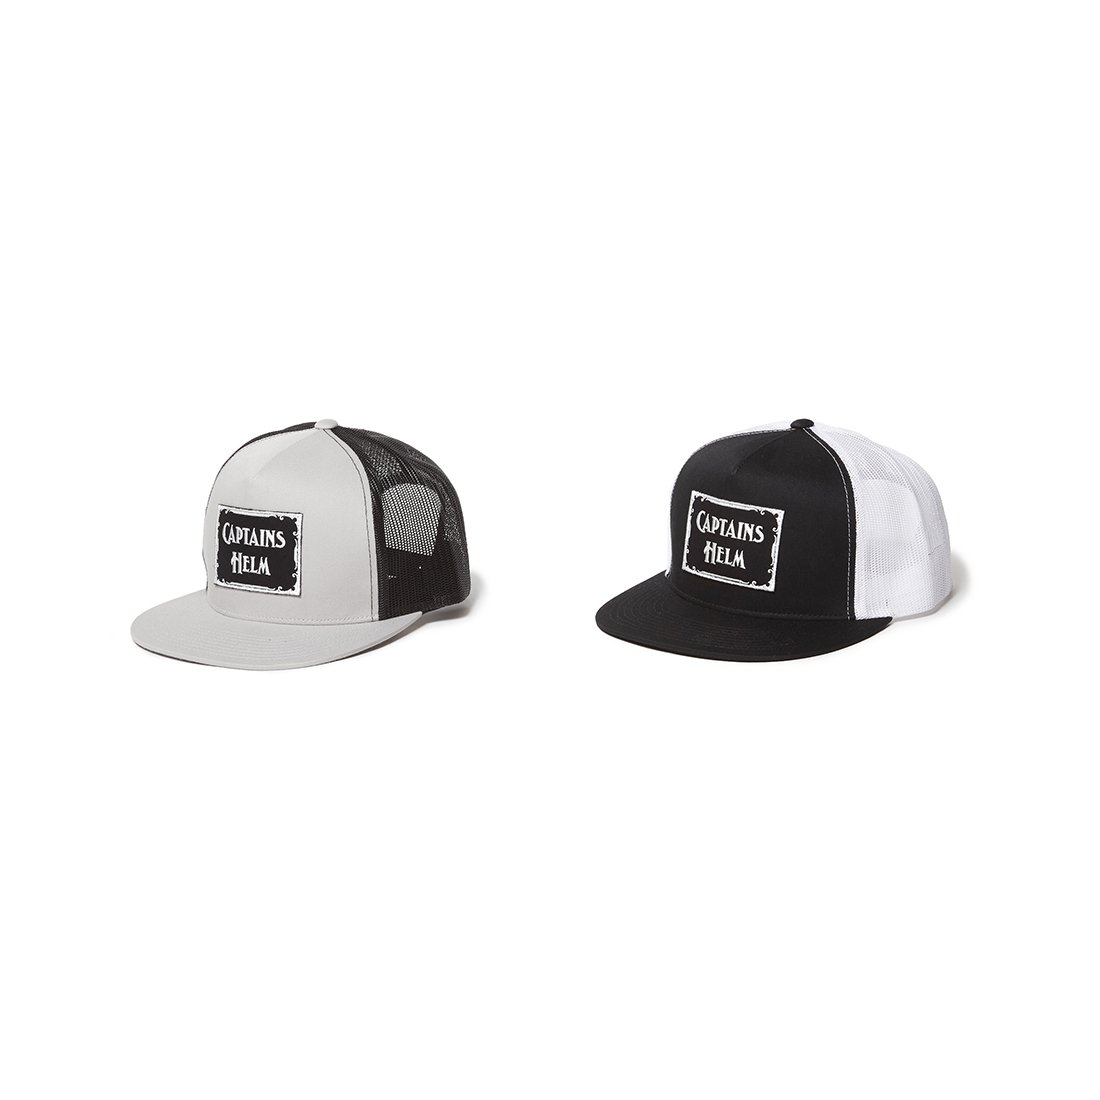 CAPTAINS HELM #LOGO WP MESH CAP